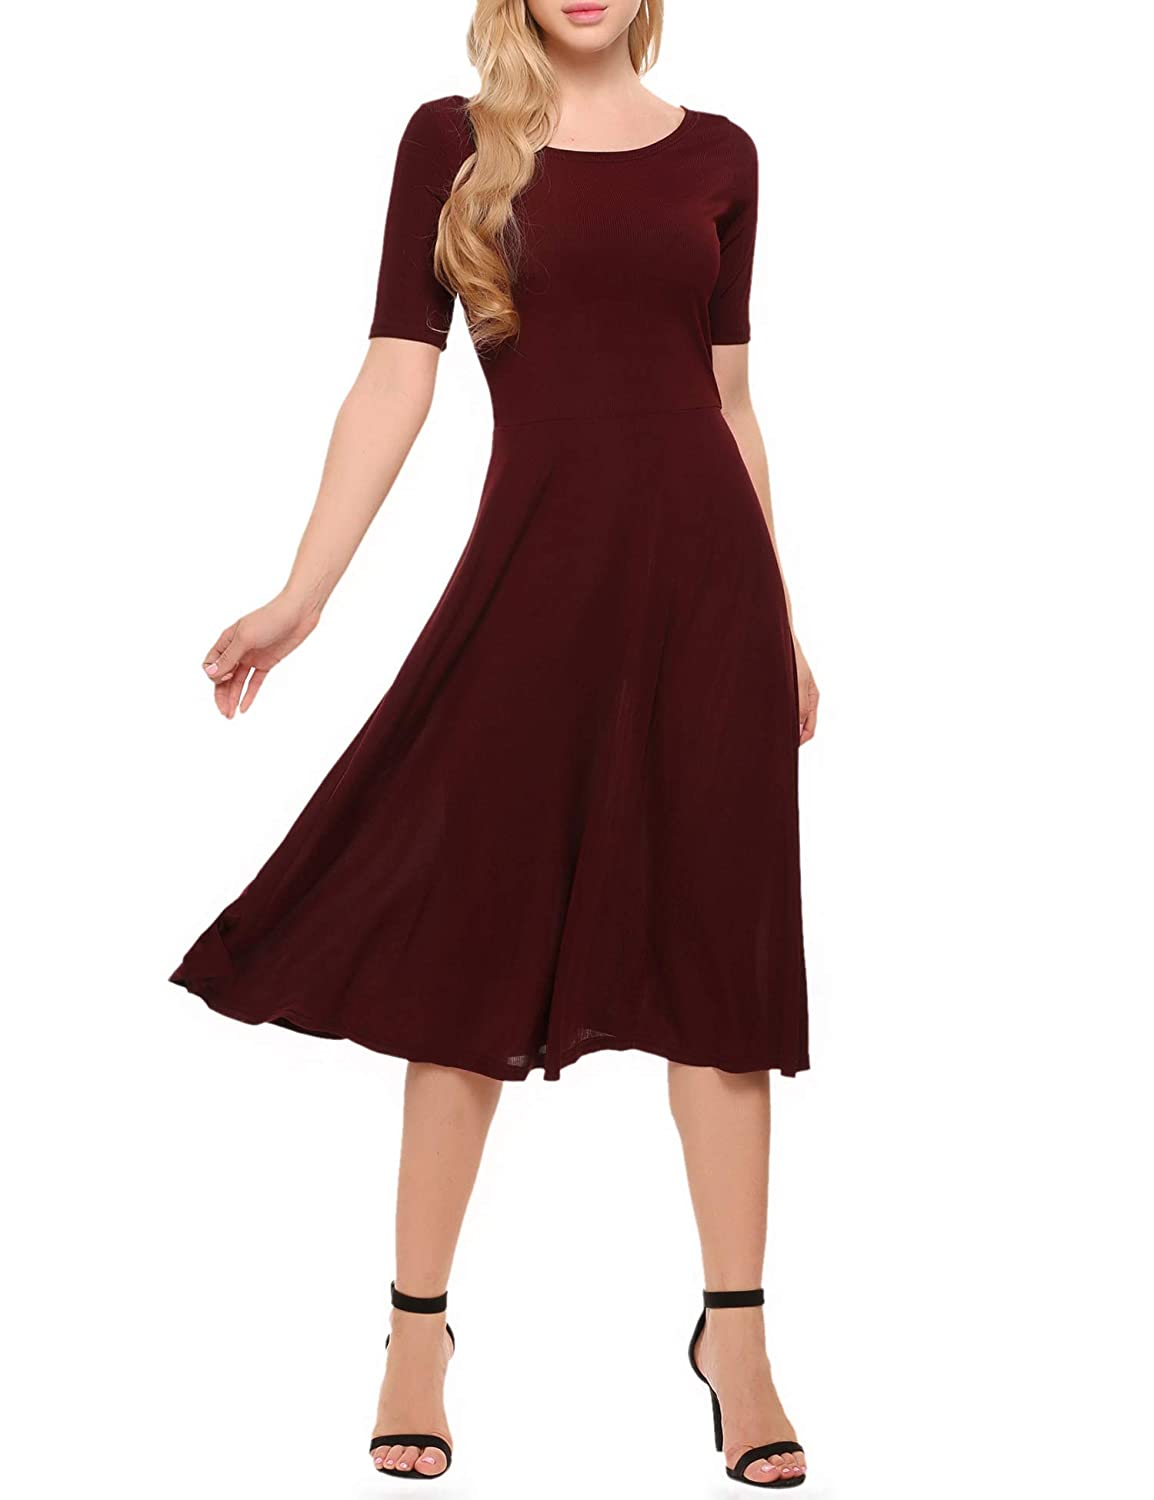 832cc0e3053c Zeagoo Elegant Casual Dress